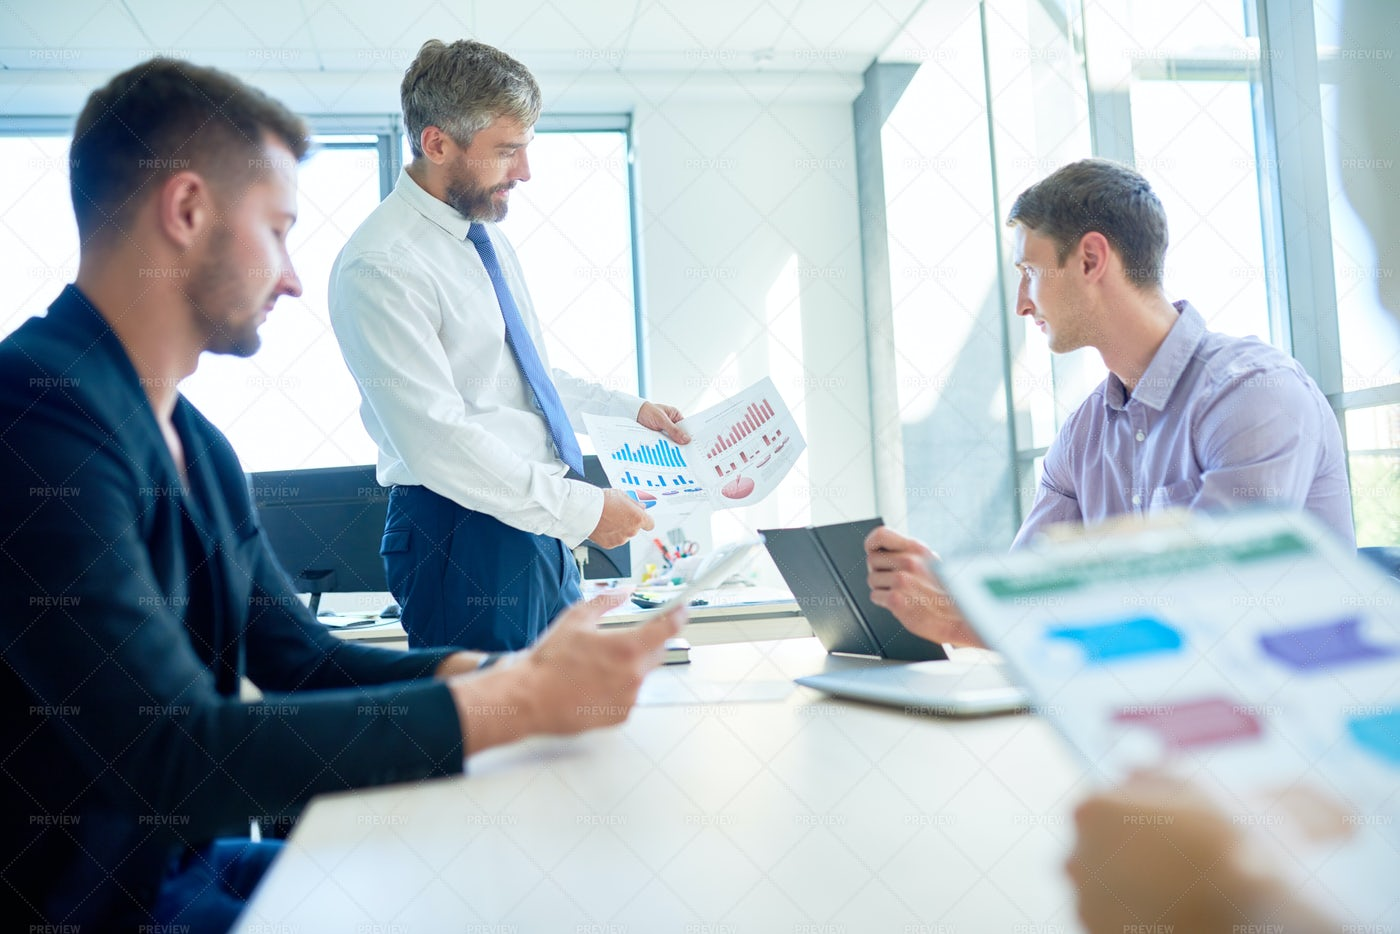 Managers Wrapped Up In Discussion: Stock Photos